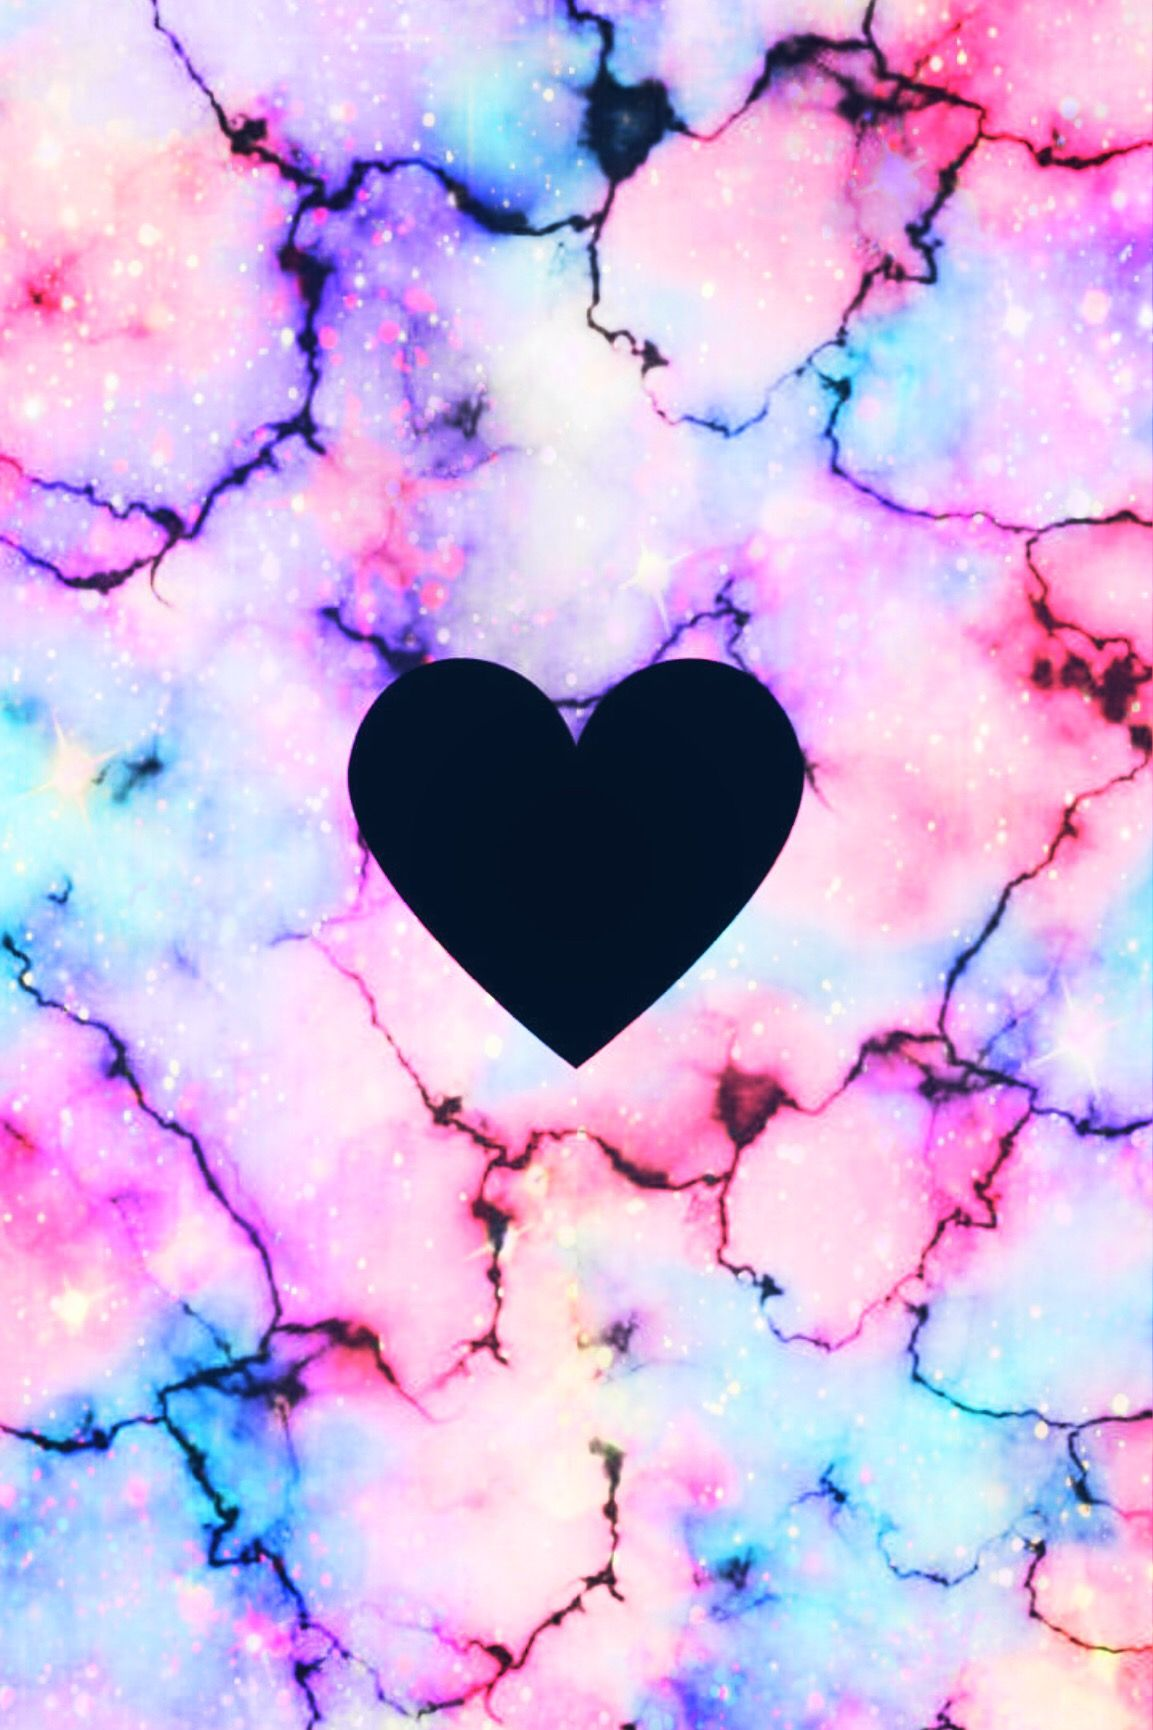 Marble Heart Galaxy Wallpaper Androidwallpaper Iphonewallpaper Glitter Sparkle Galaxy Pink And Purple Wallpaper Galaxy Wallpaper Purple Galaxy Wallpaper